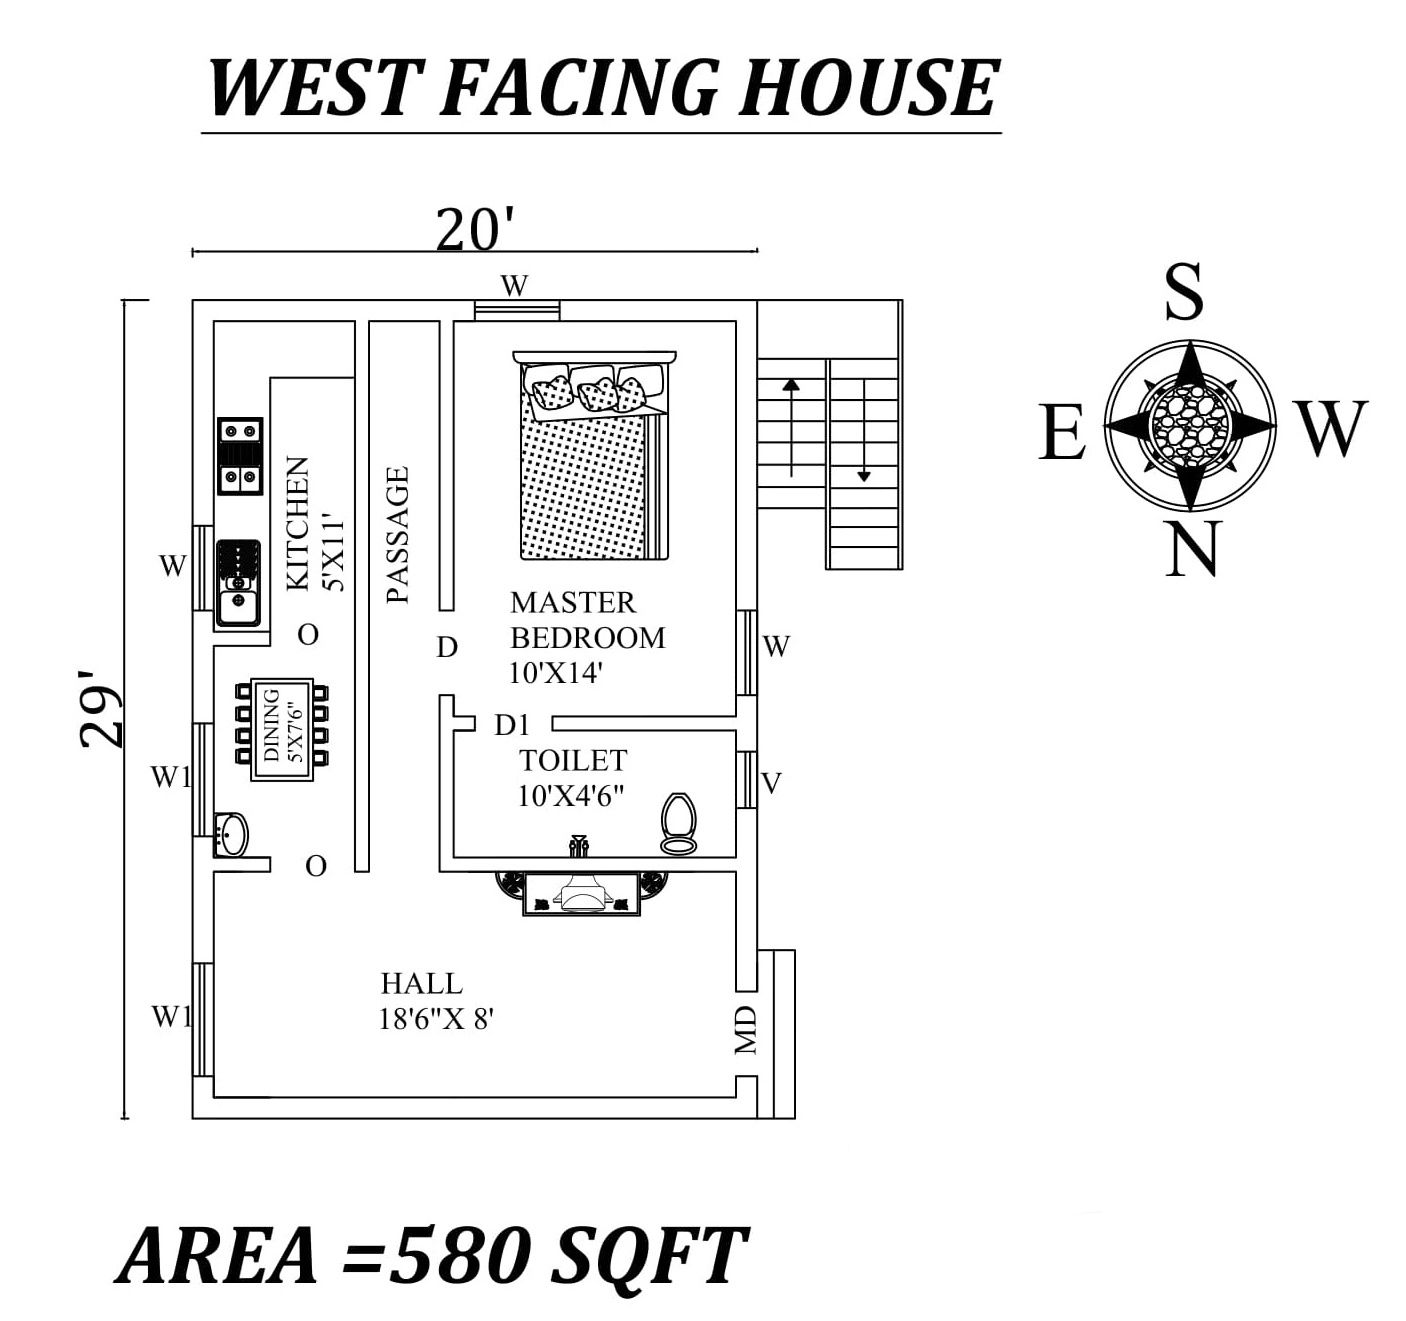 Autocad Drawing File Shows 20 X29 Single Bhk West Facing House